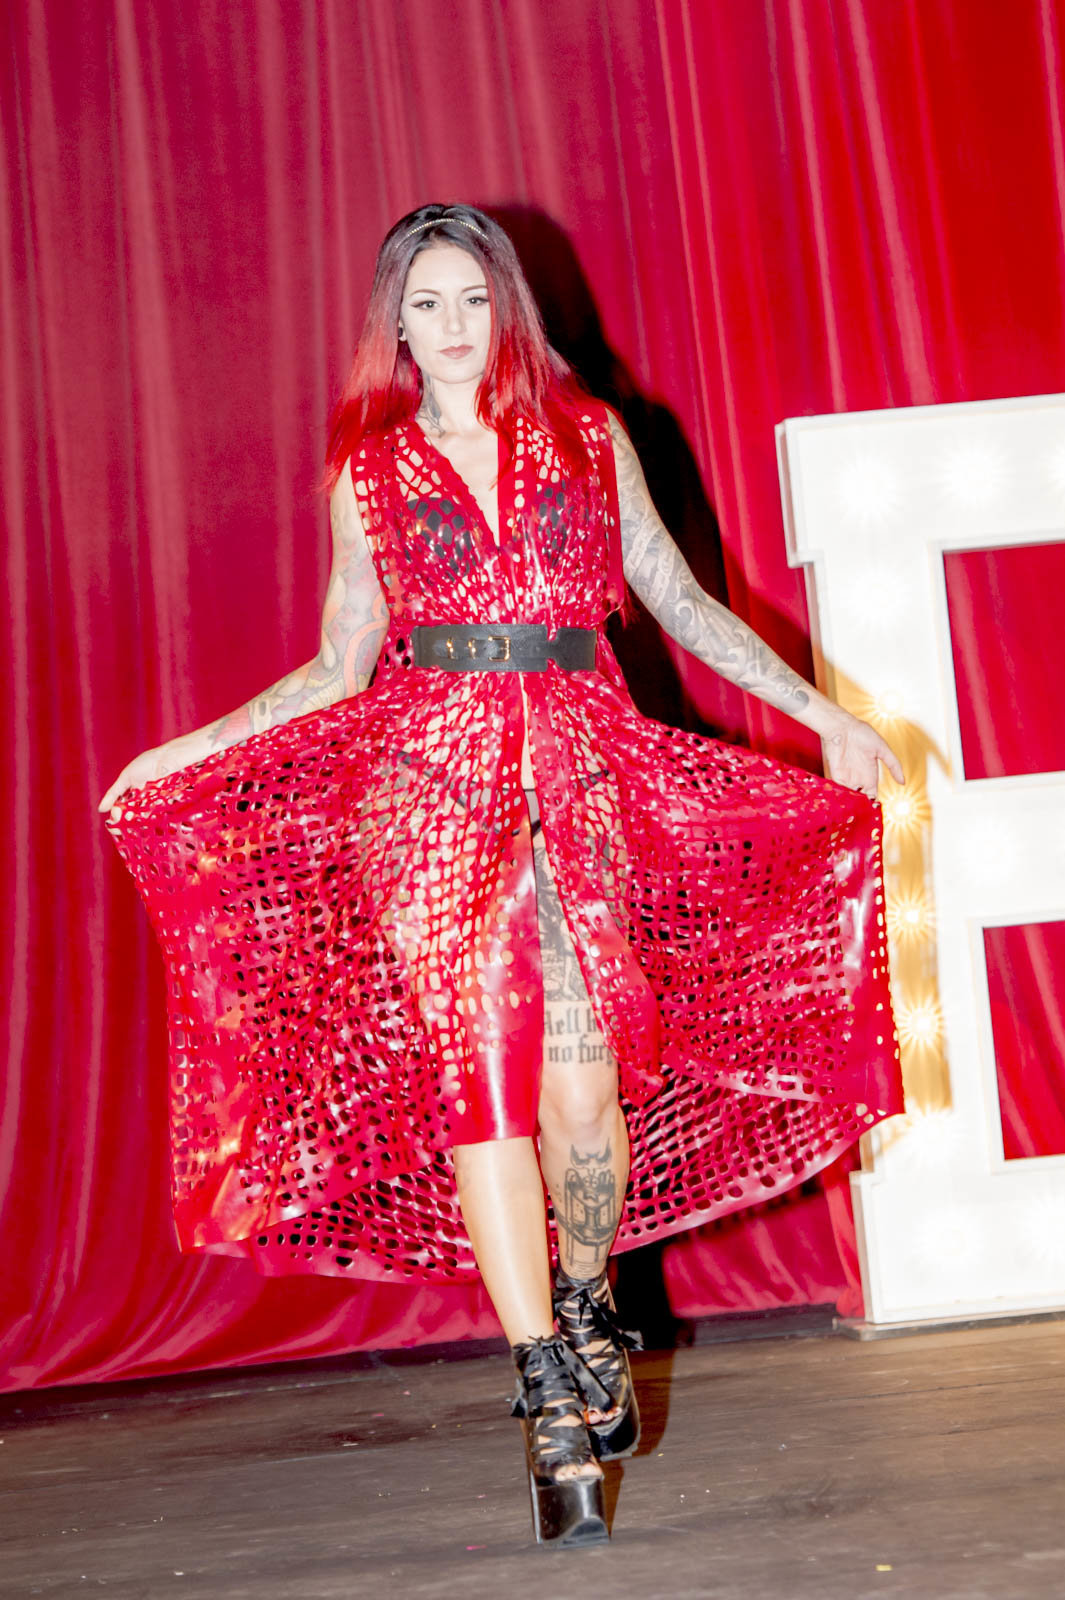 Red Dress on the catwalk